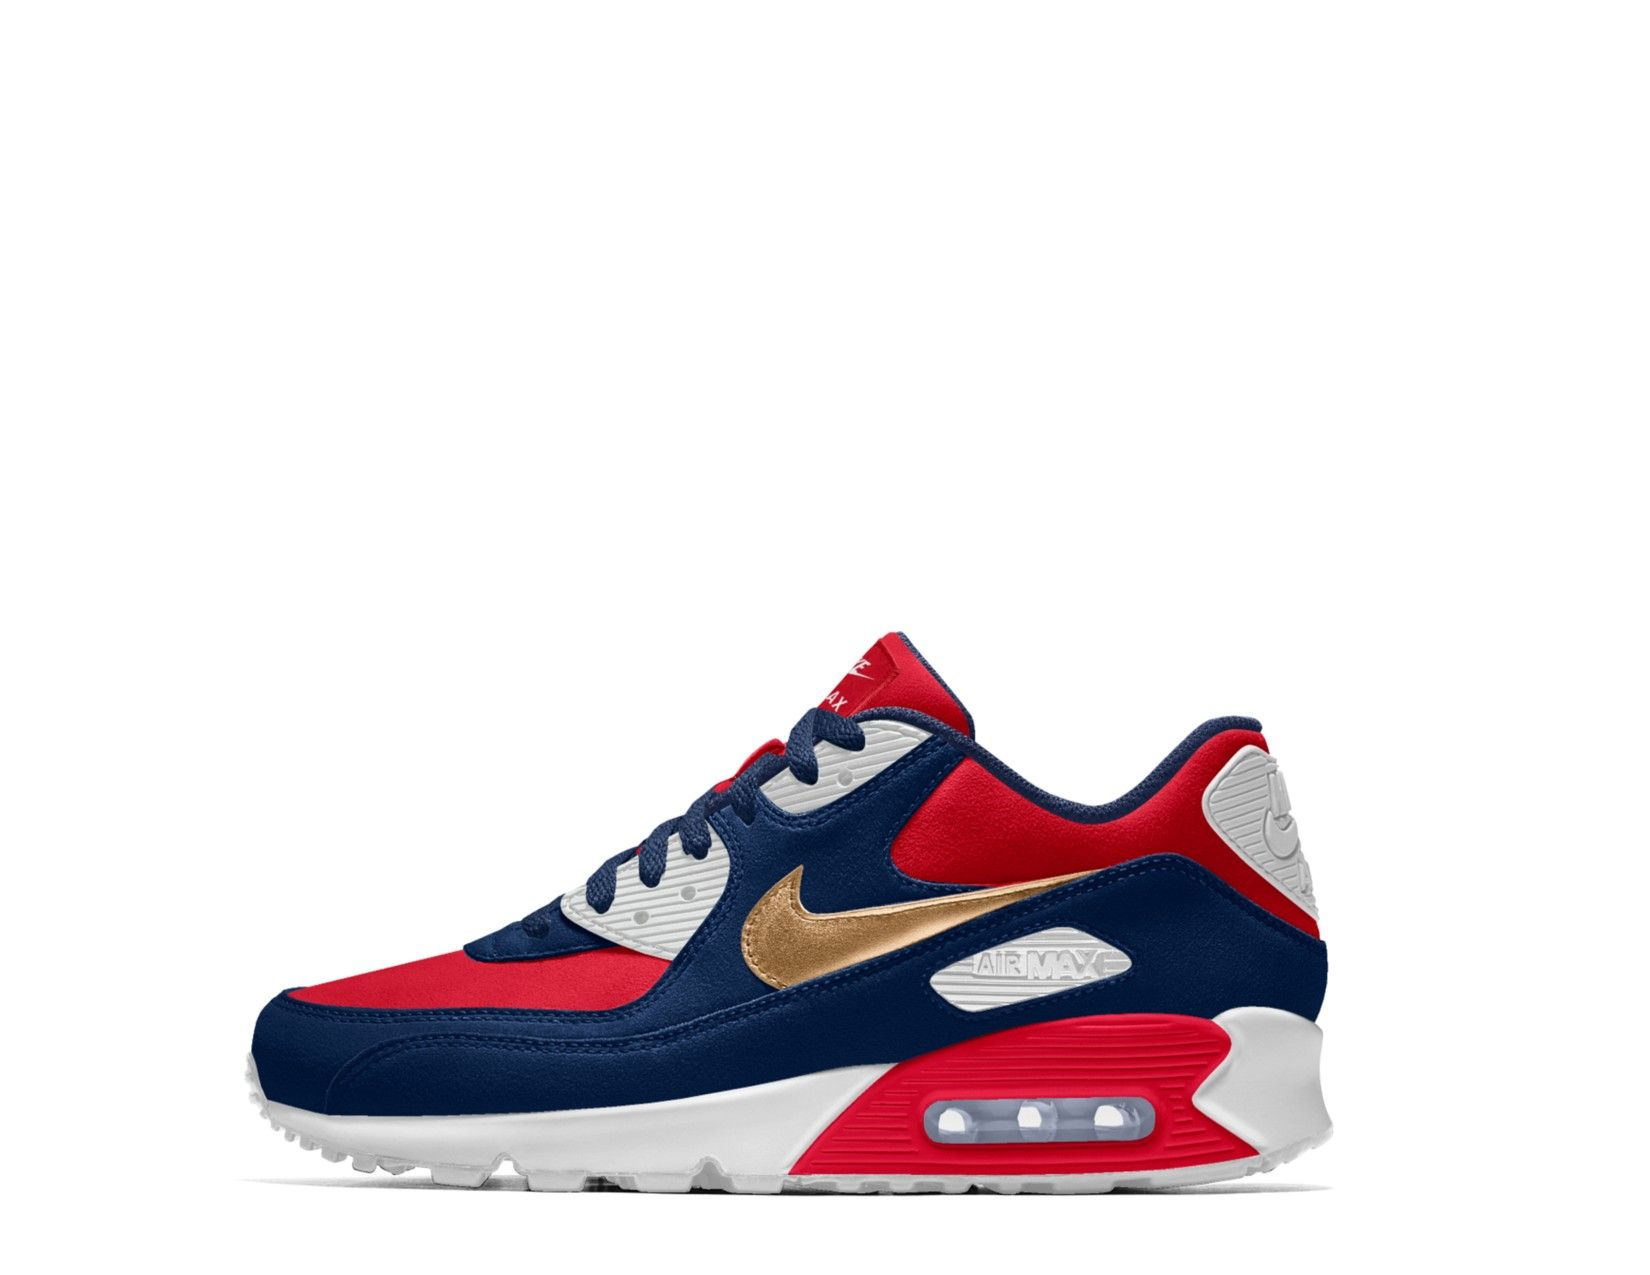 1990 Air Max Olympic Gold, Red, White and blue. | Schuhe